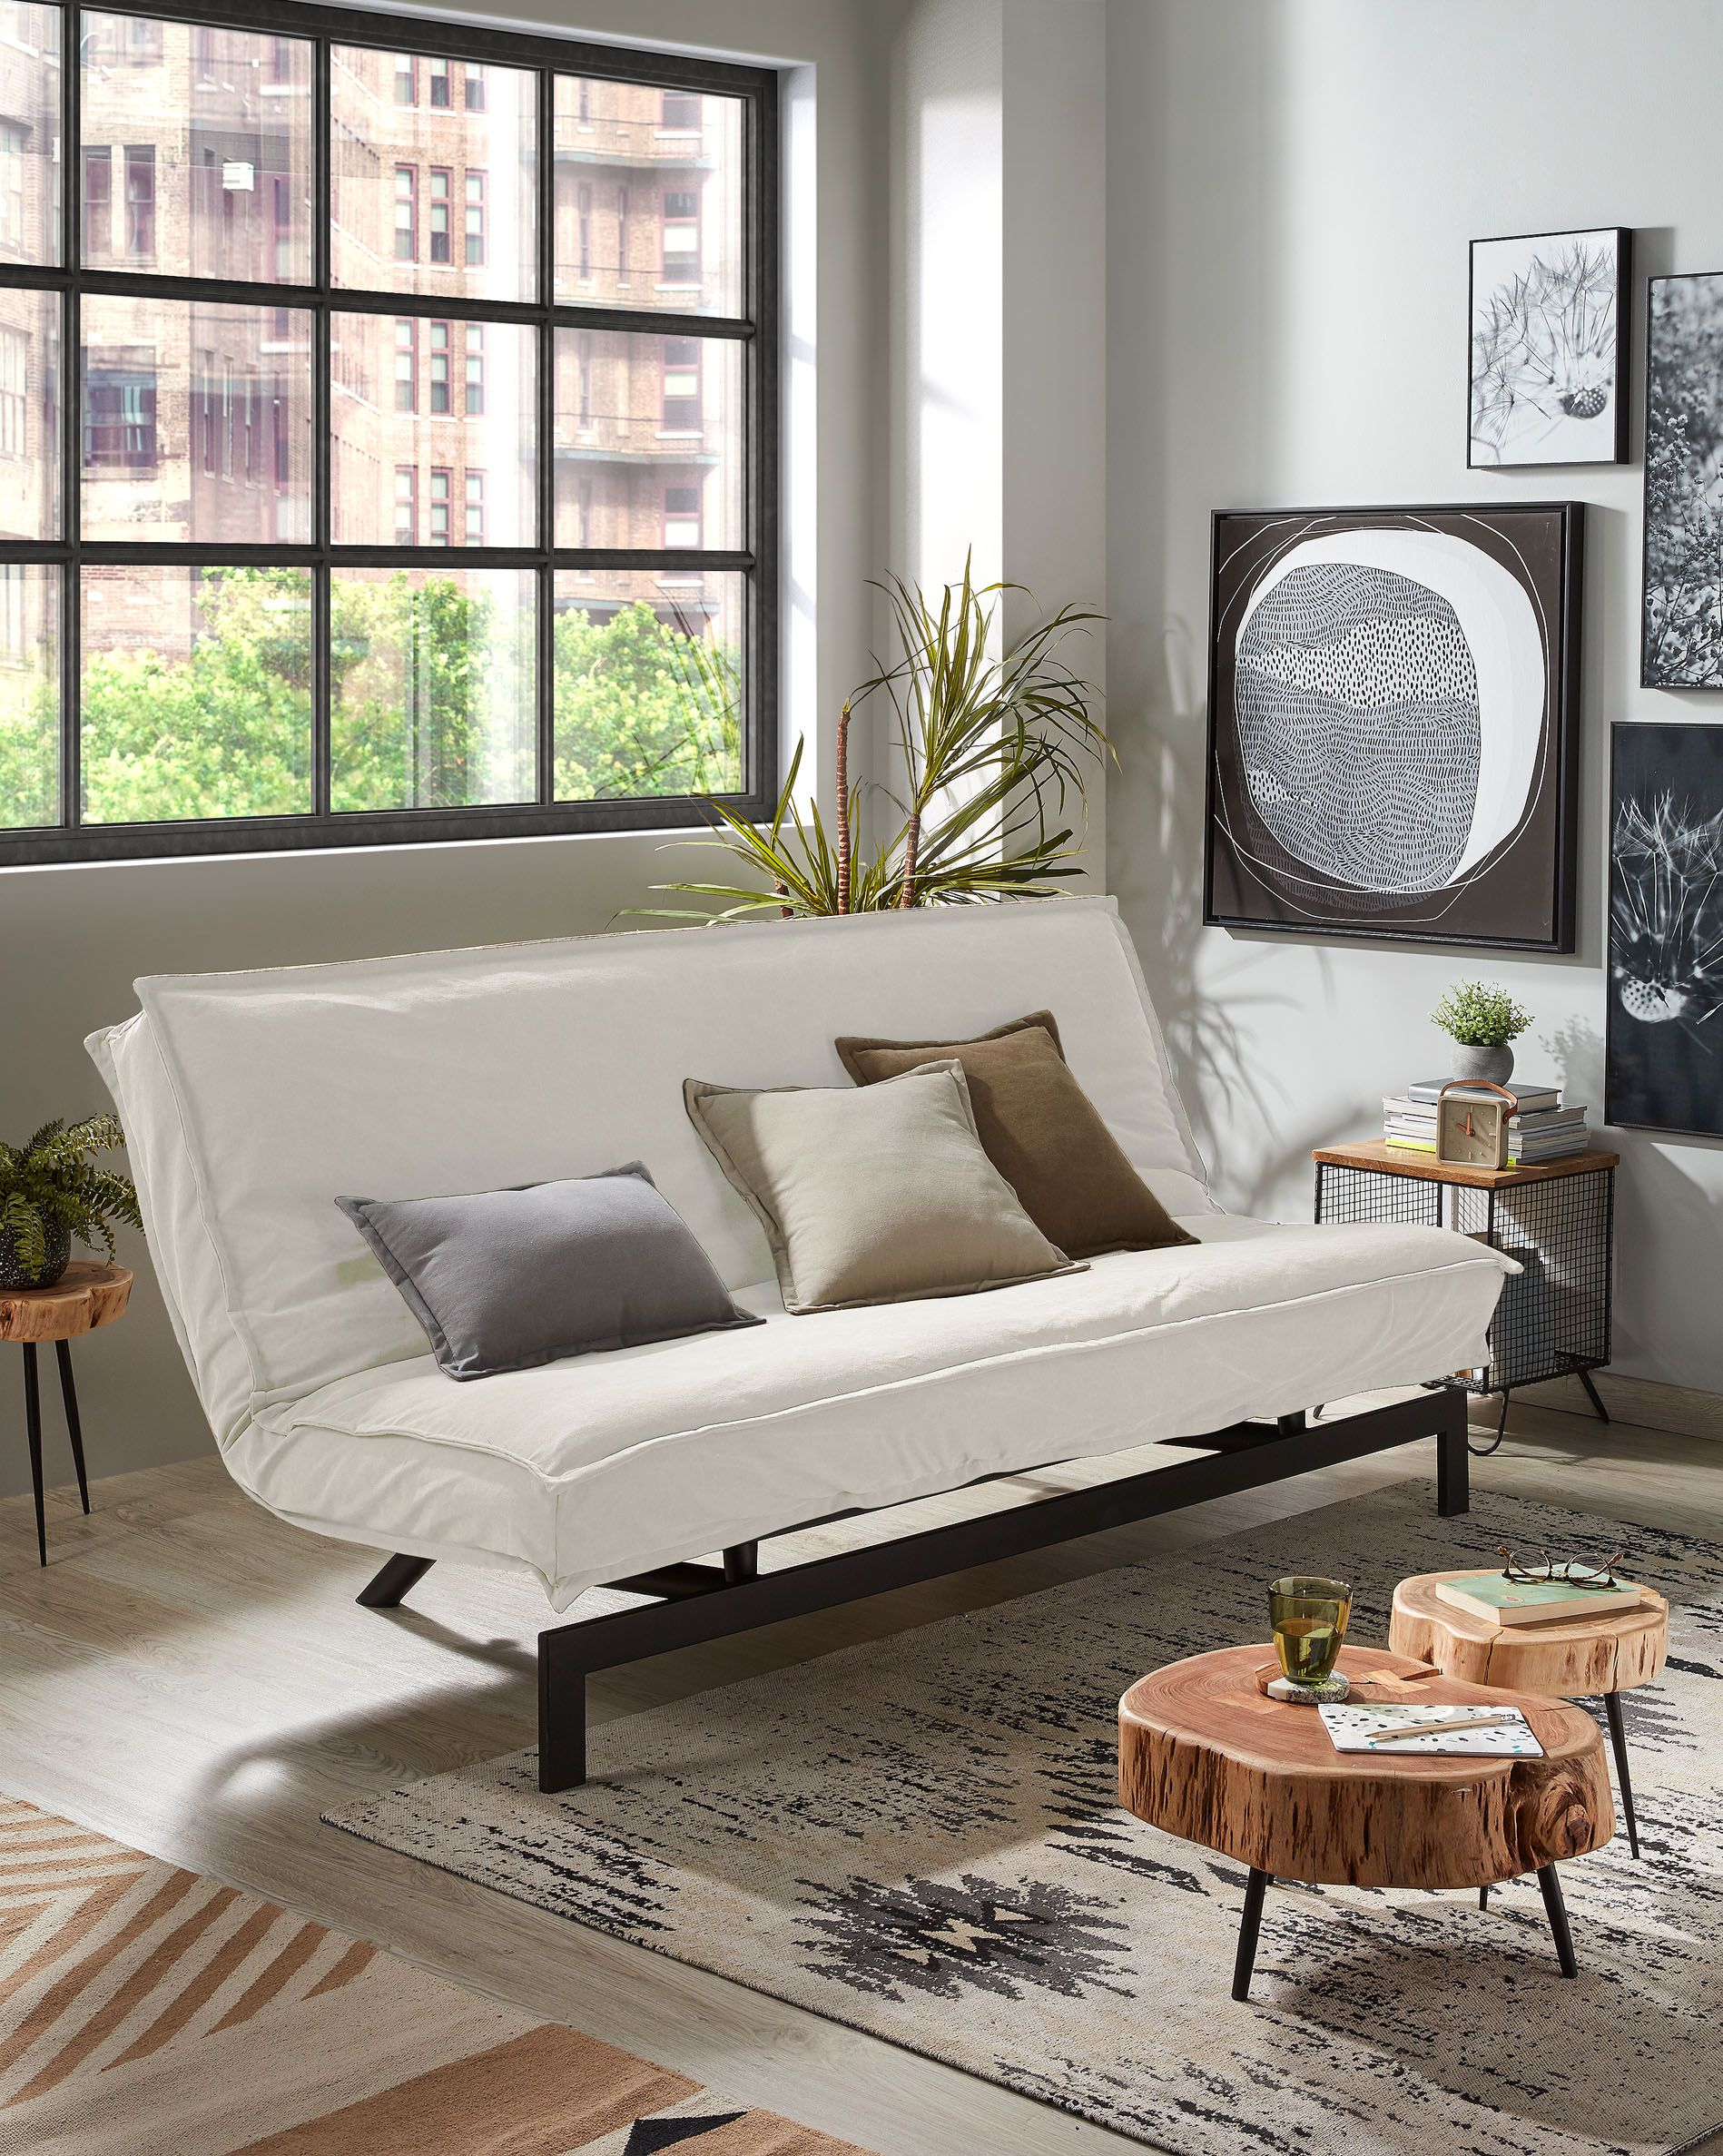 eveline sofa bed 140 cm white metal structure